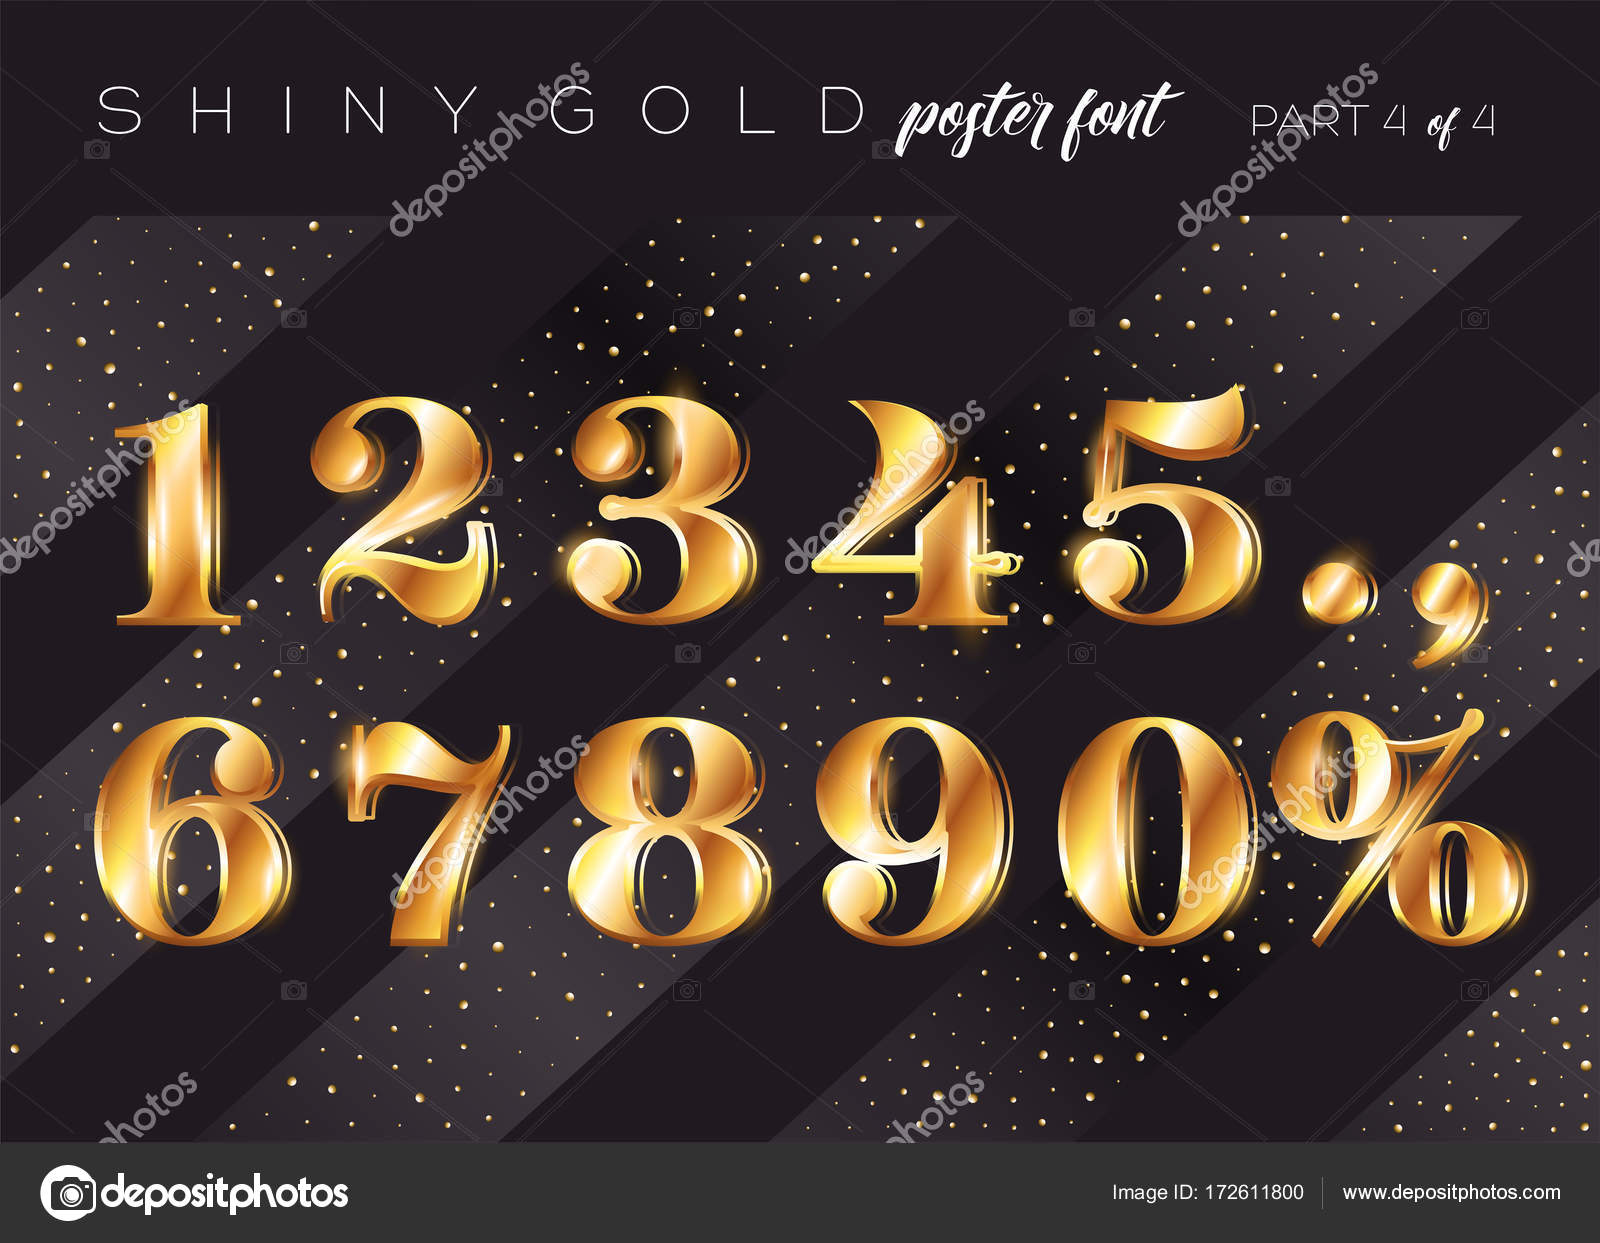 realistic metallic typeface in gatsby style festive 3d letters for christmas poster xmas greeting card invitation design rich stylish retro typography